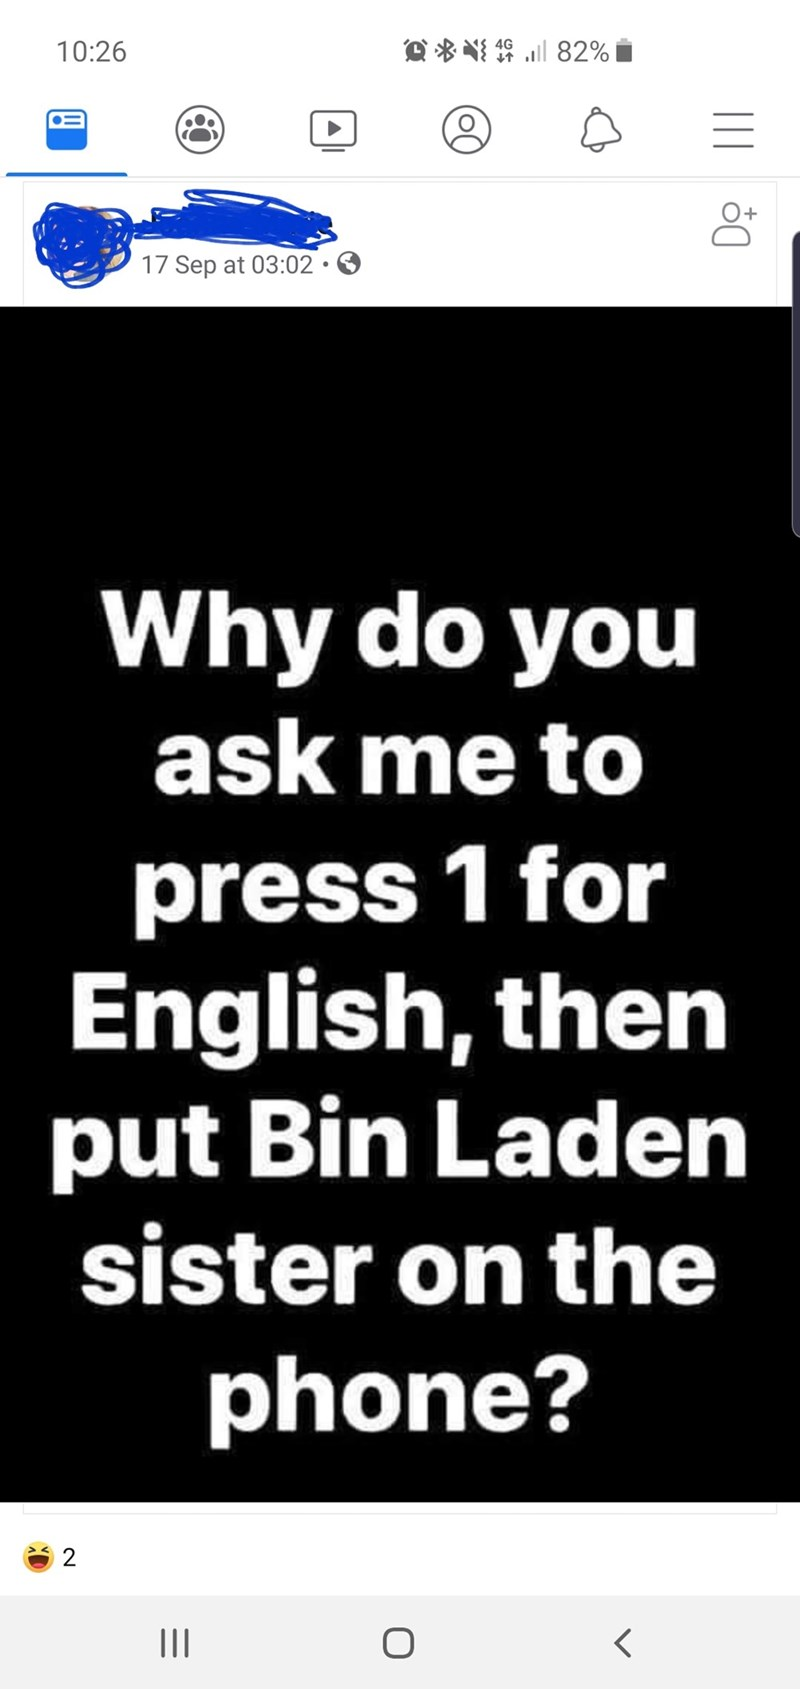 Text - Text - *然坊三 82% 4G 10:26 17 Sep at 03:02. Why do you ask me to press 1 for English, then put Bin Laden sister on the phone? 2 II